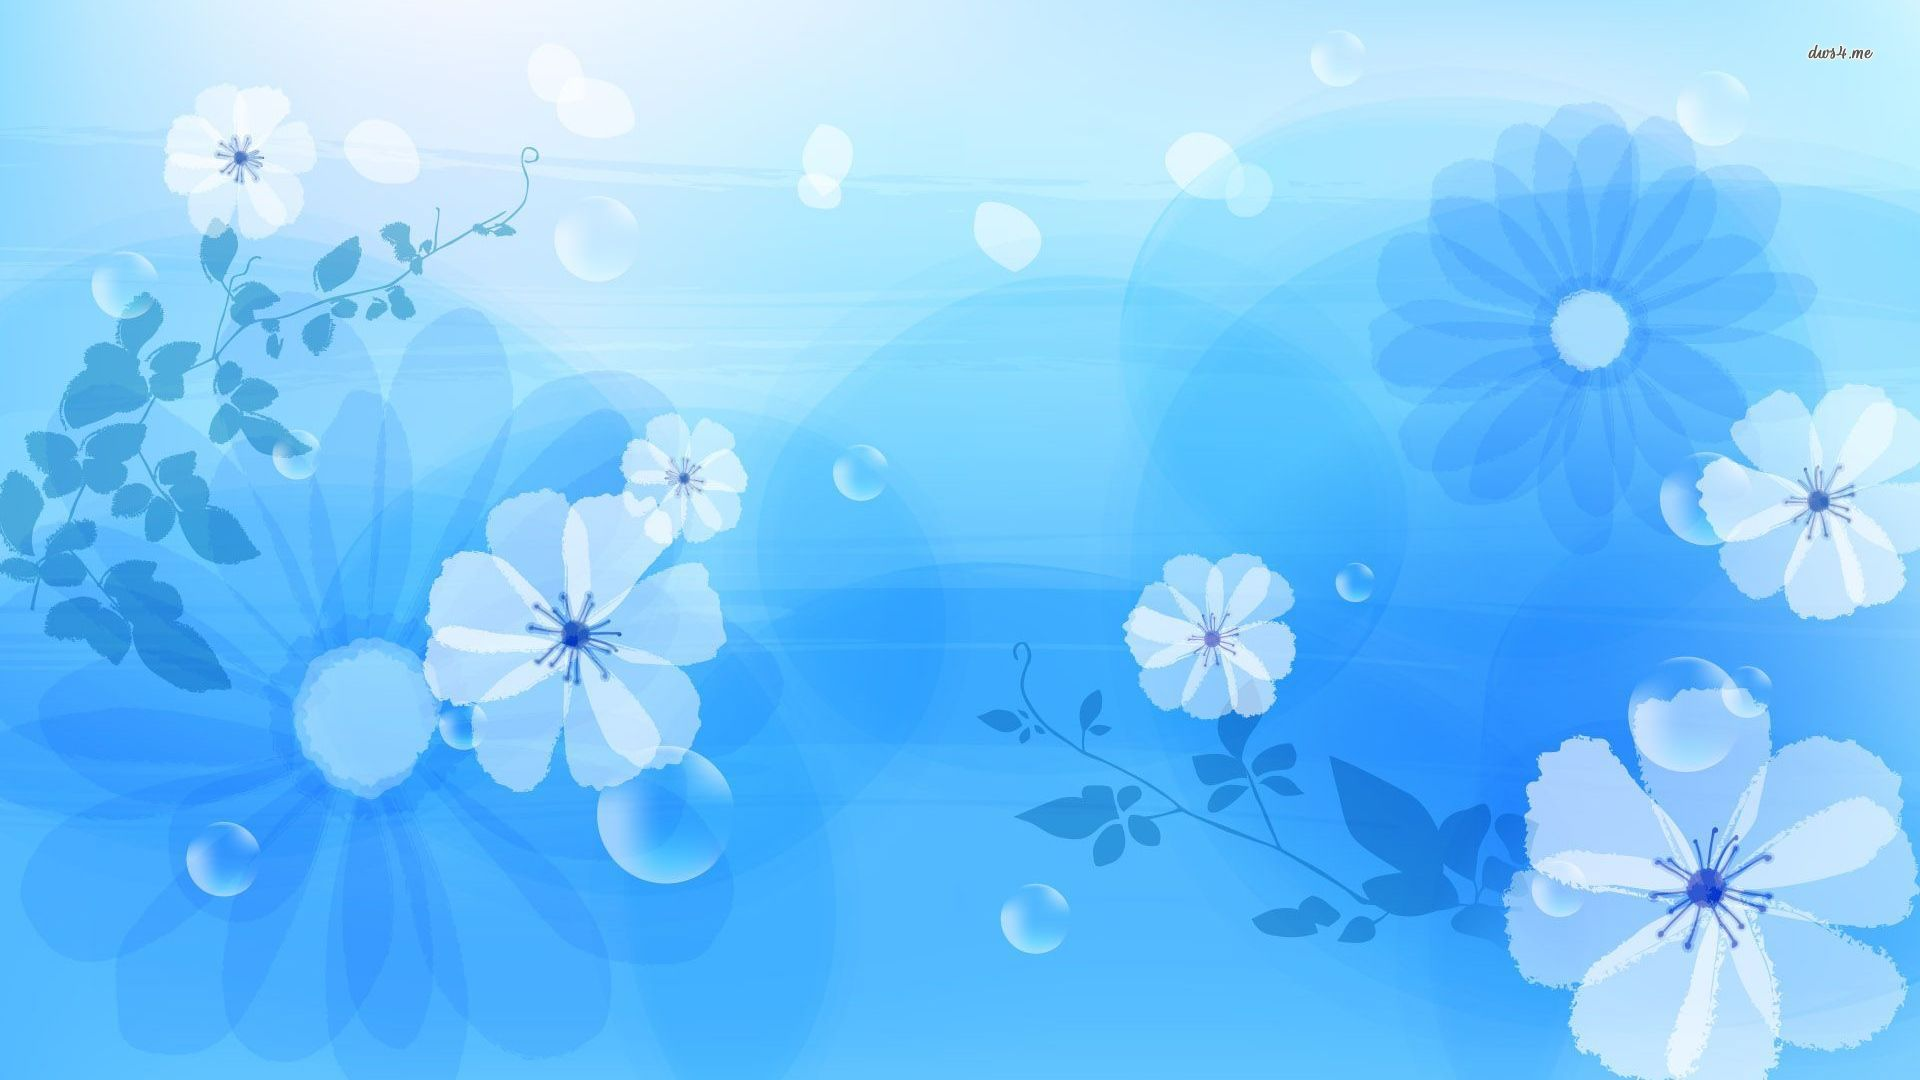 Light Blue Wallpapers, 35 Light Blue Gallery of Pics, Fungyung ...